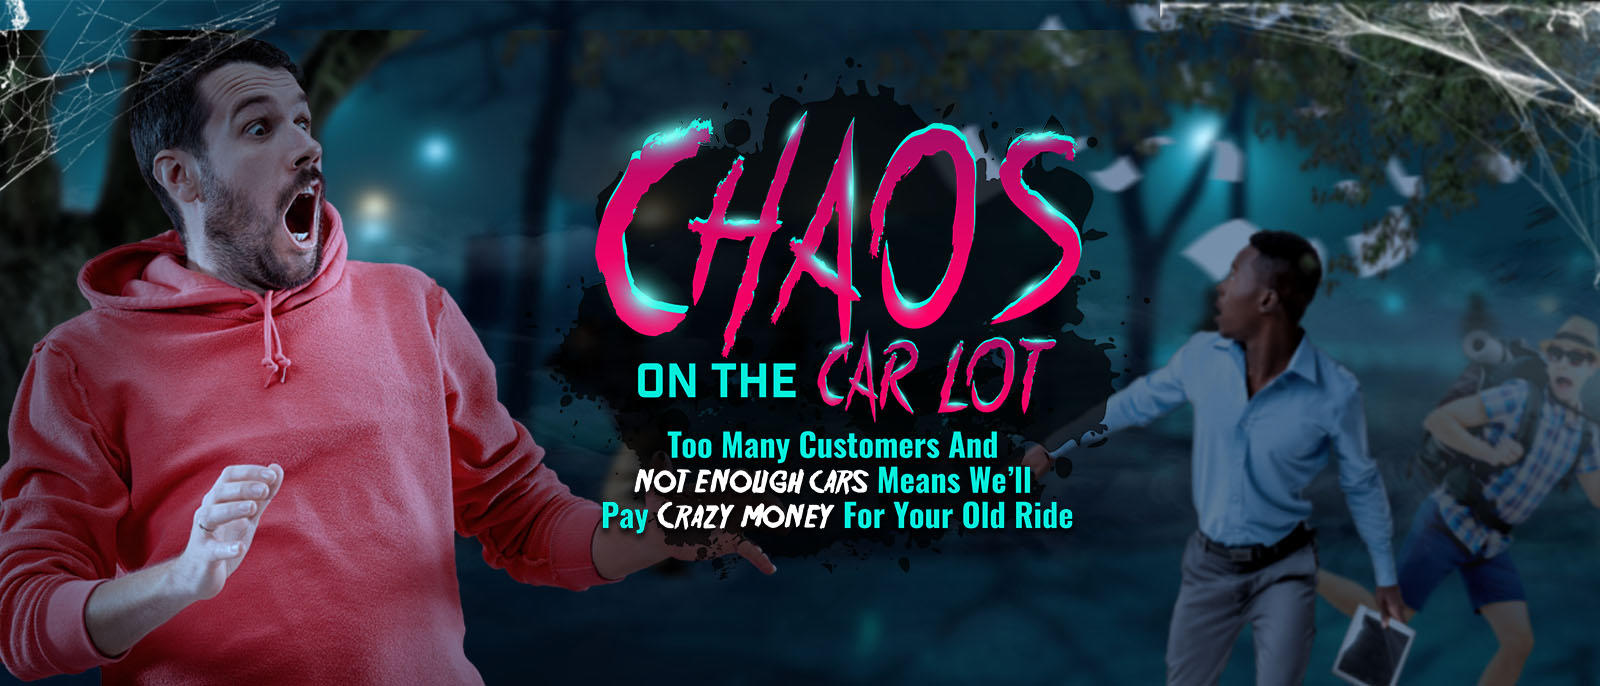 Bring us whatever you're driving, and we'll give you a whole lot more for your old ride.  New, used or abused…We're dying for your old ride. It's the perfect opportunity to dump that ghoul in your garage and get a scary deal on a Nicer, Newer® car.